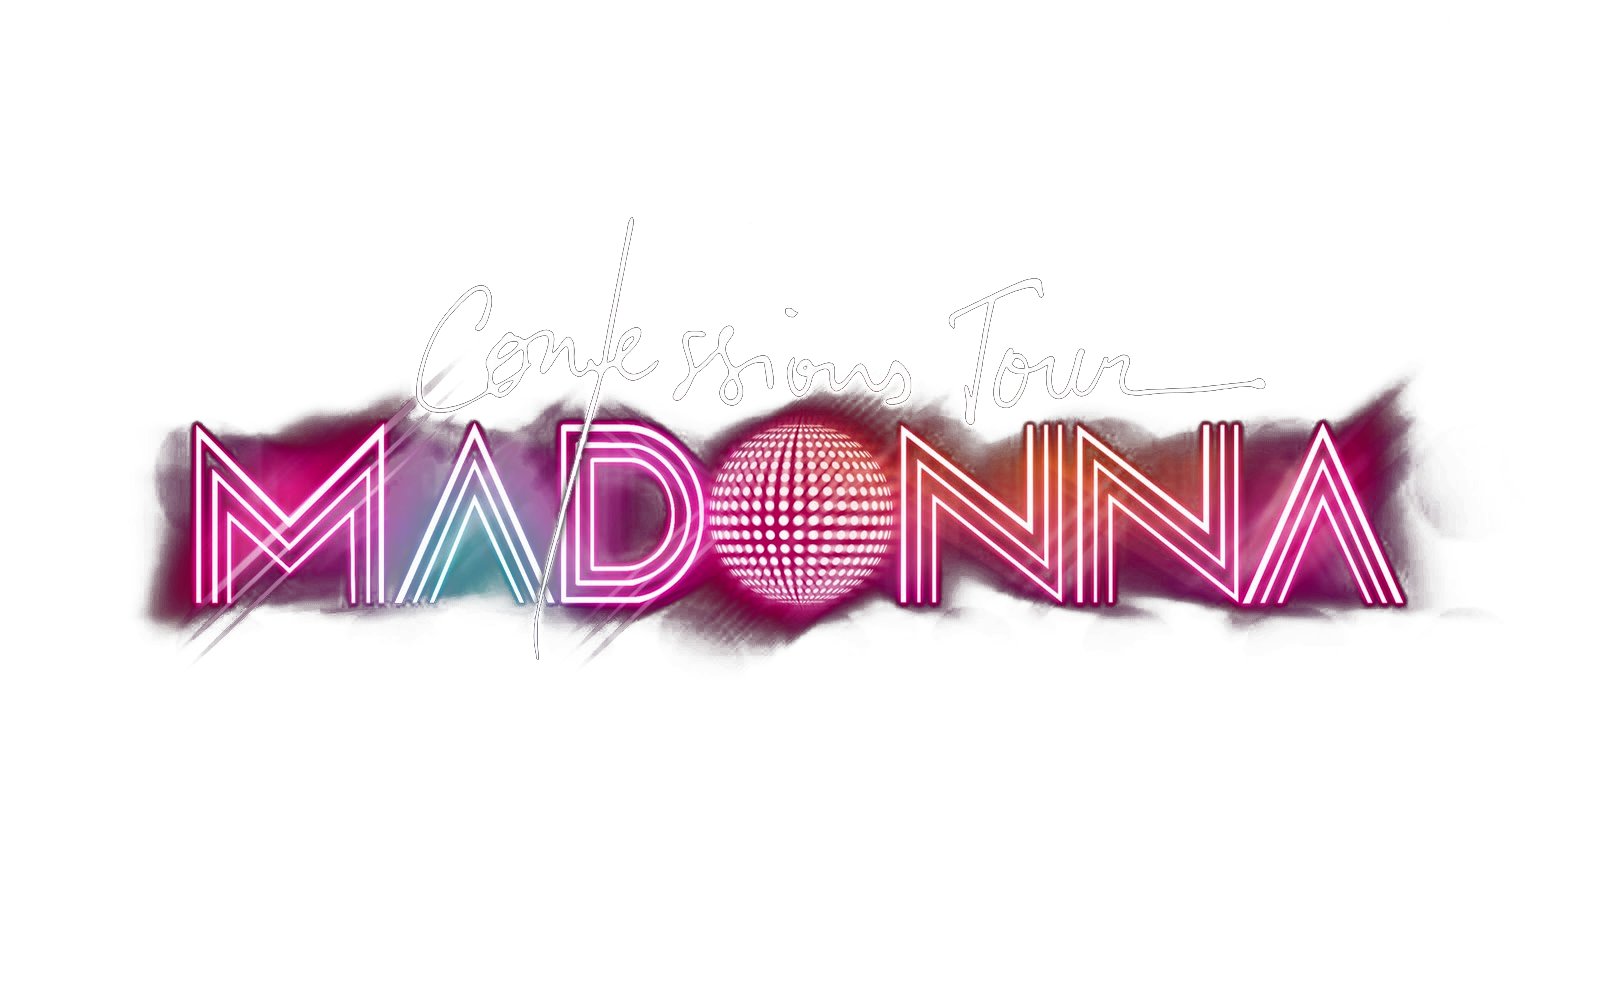 Madonna Confessions Tour logo Png 2 by seguricarl